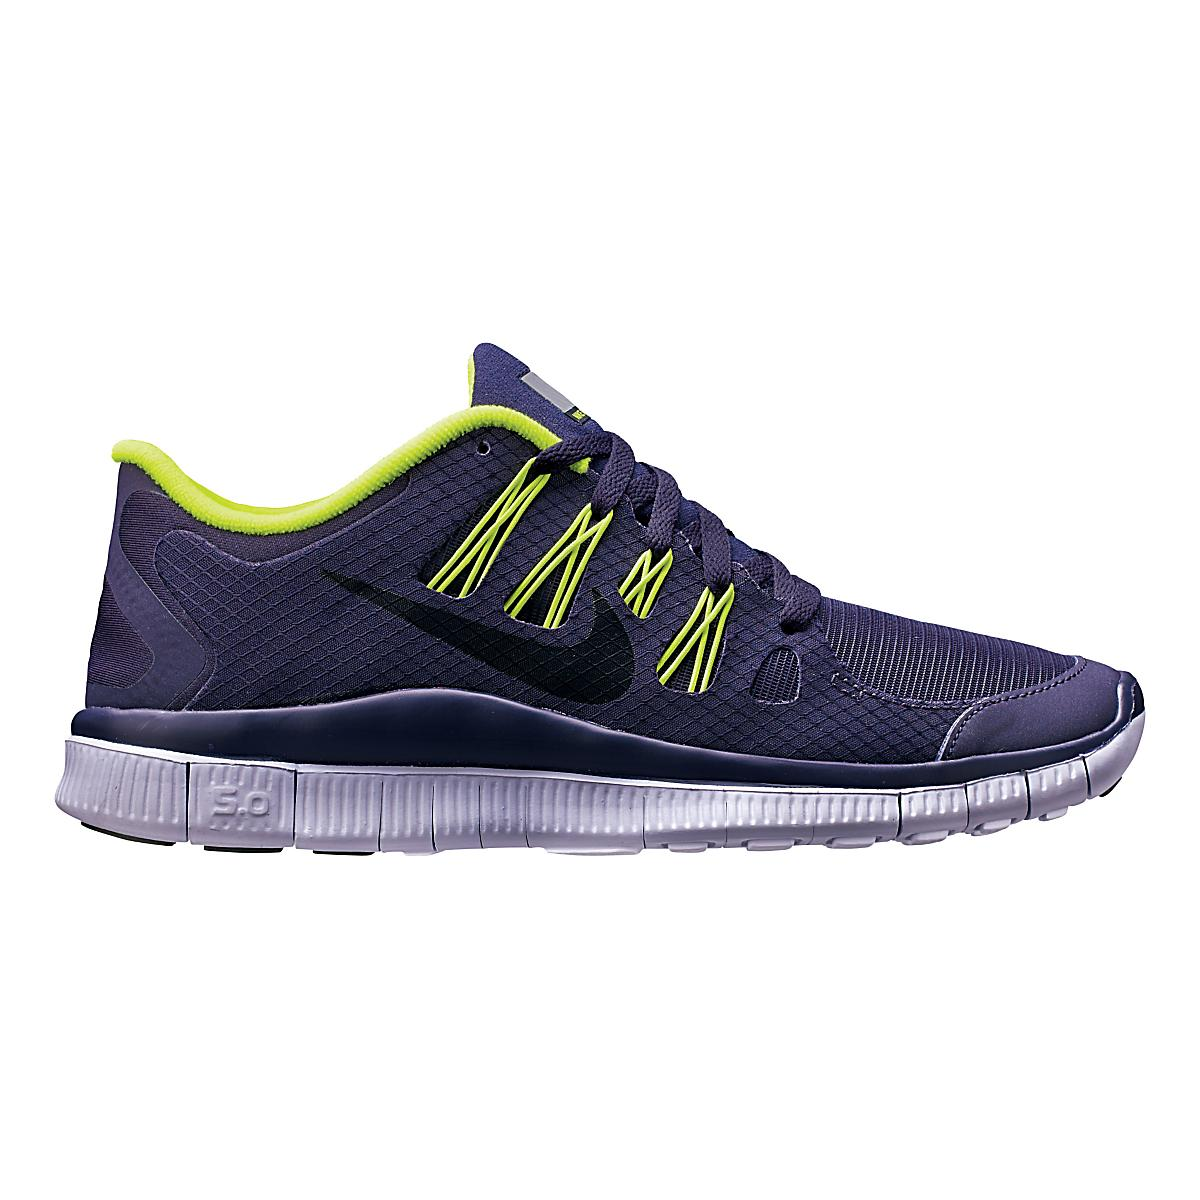 Womens Nike Free 5.0+ Shield Running Shoe at Road Runner Spo